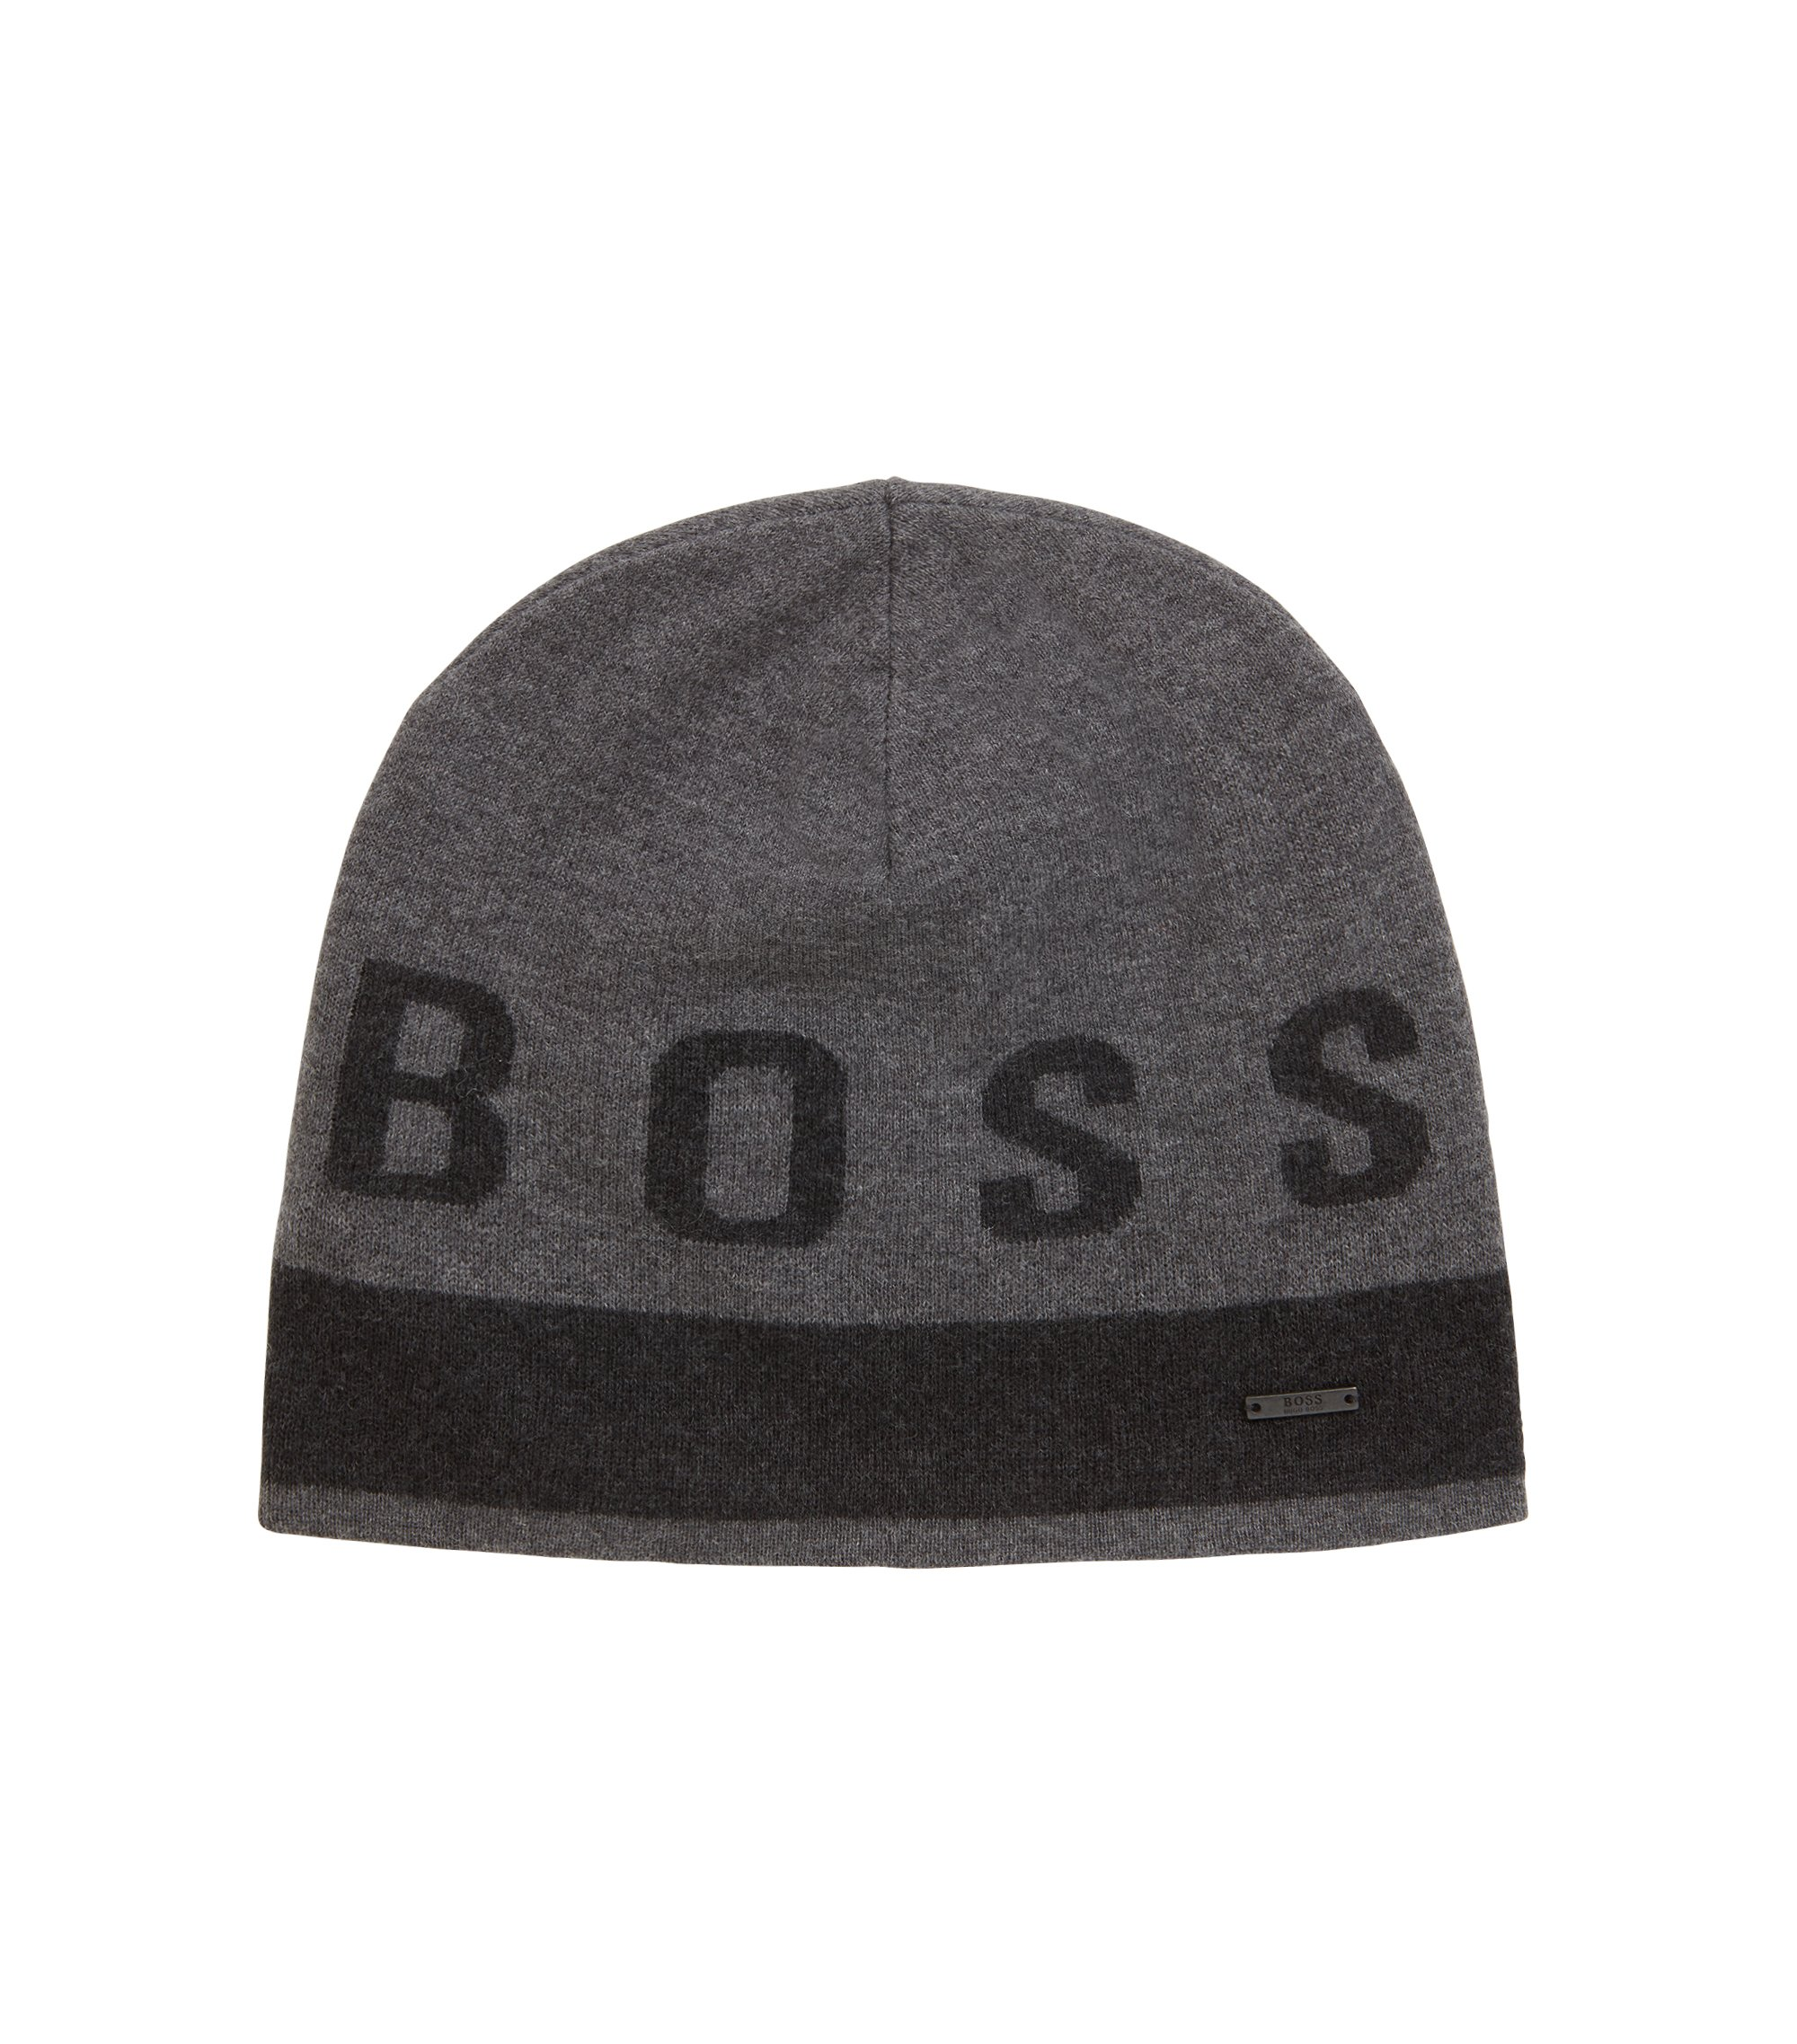 Cotton-blend beanie hat with contrast logo, Grey